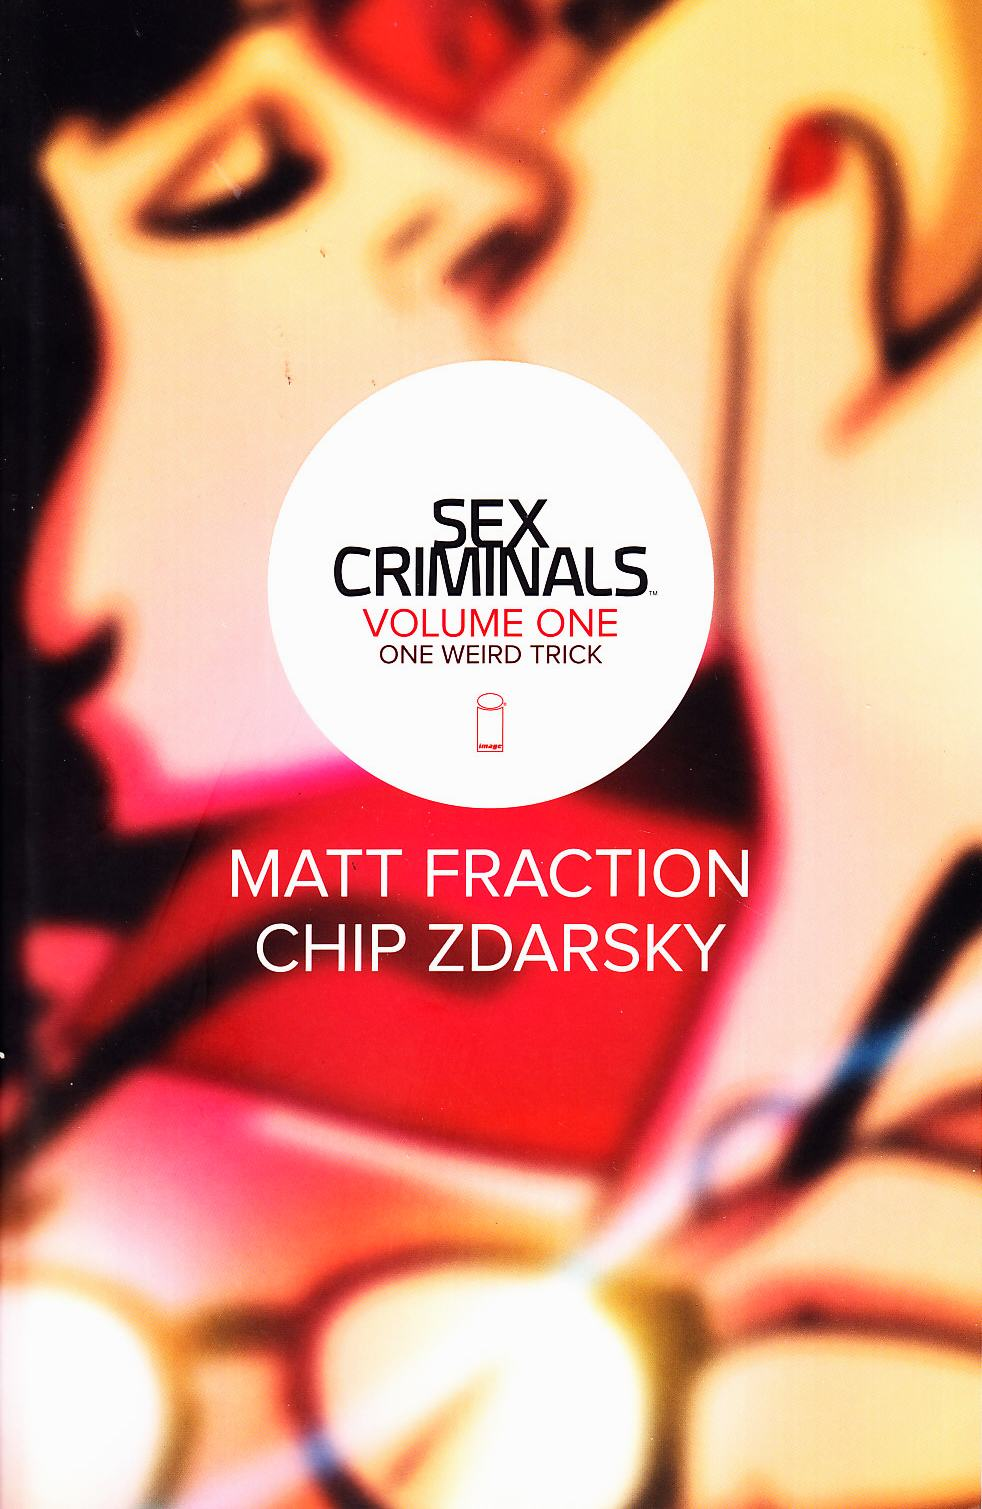 Sex Criminals by Matt Fraction and Chip Zdarsky